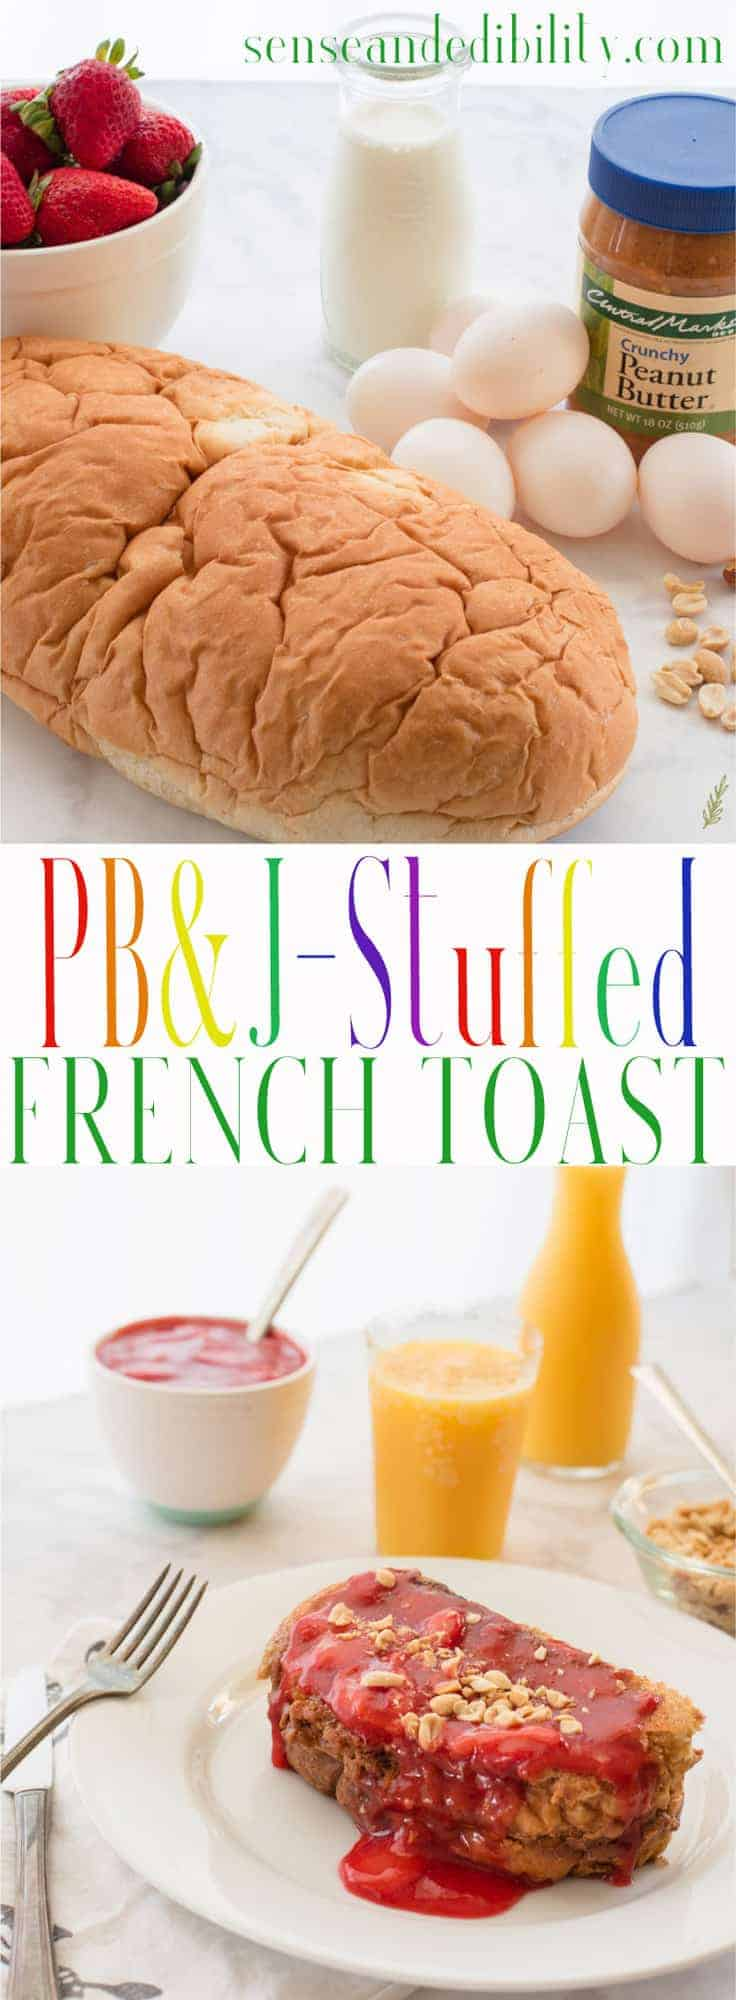 Sense & Edibility's PBJ Stuffed French Toast Pin